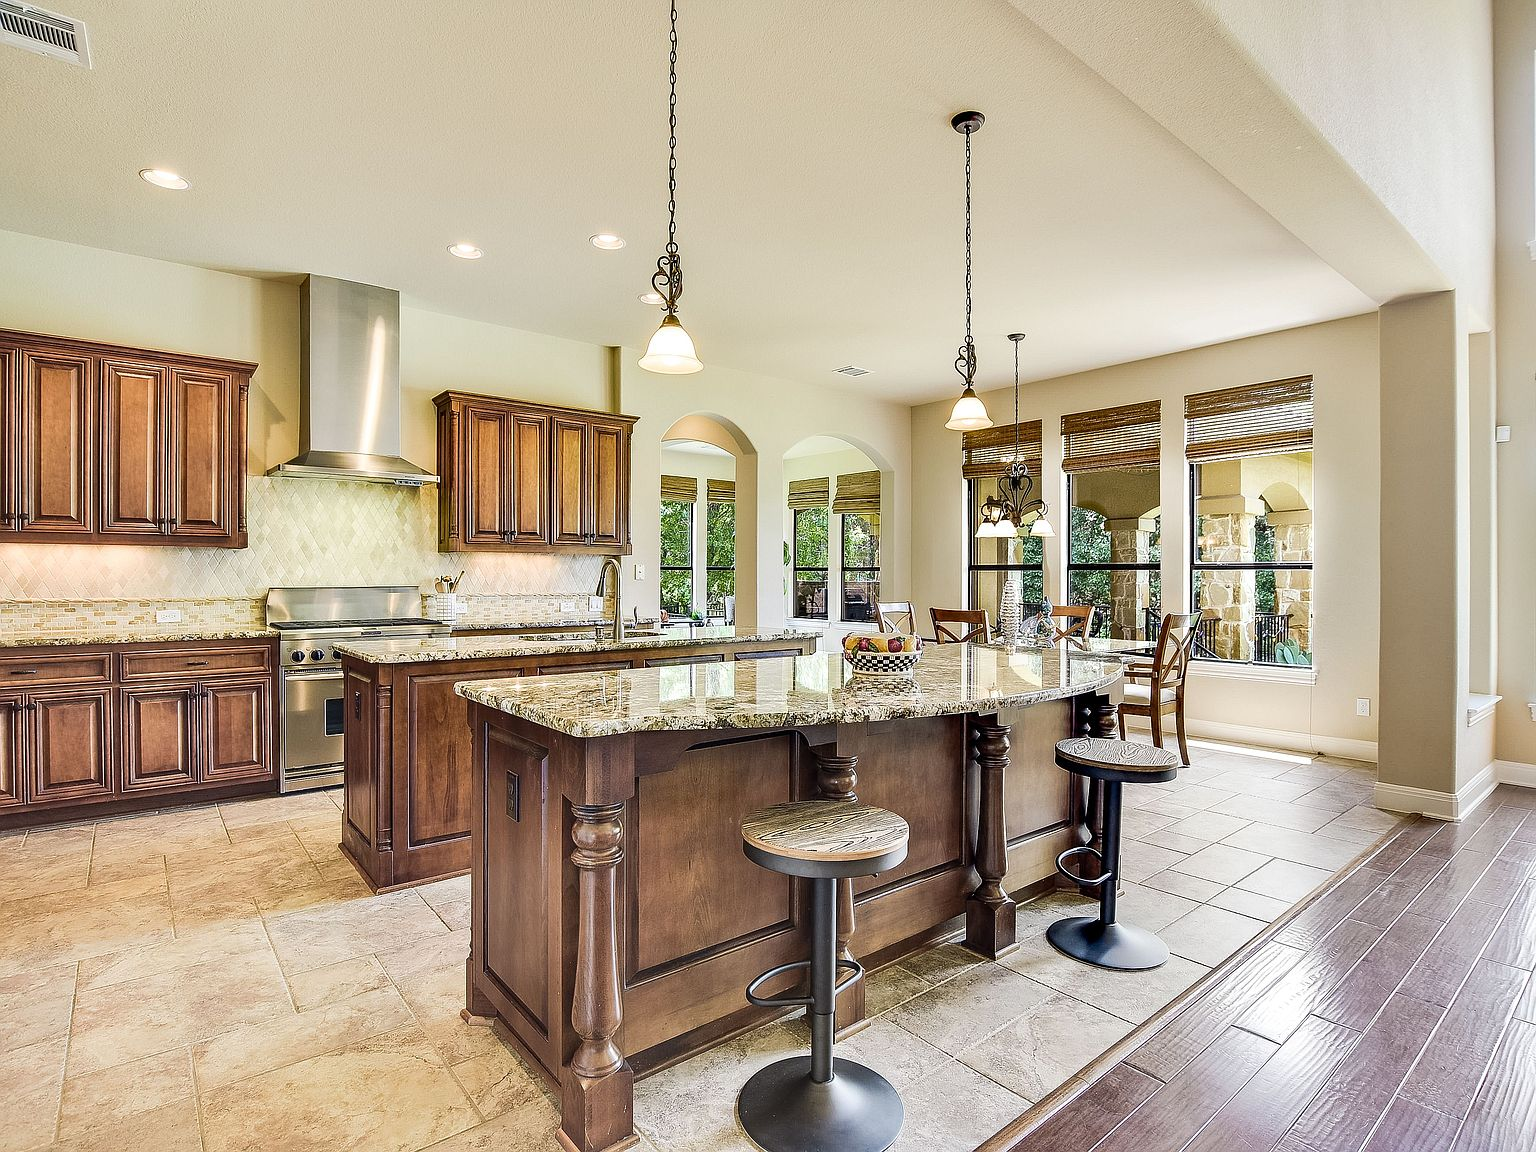 4225 Vail Dr Bee Cave Tx 78738 Zillow